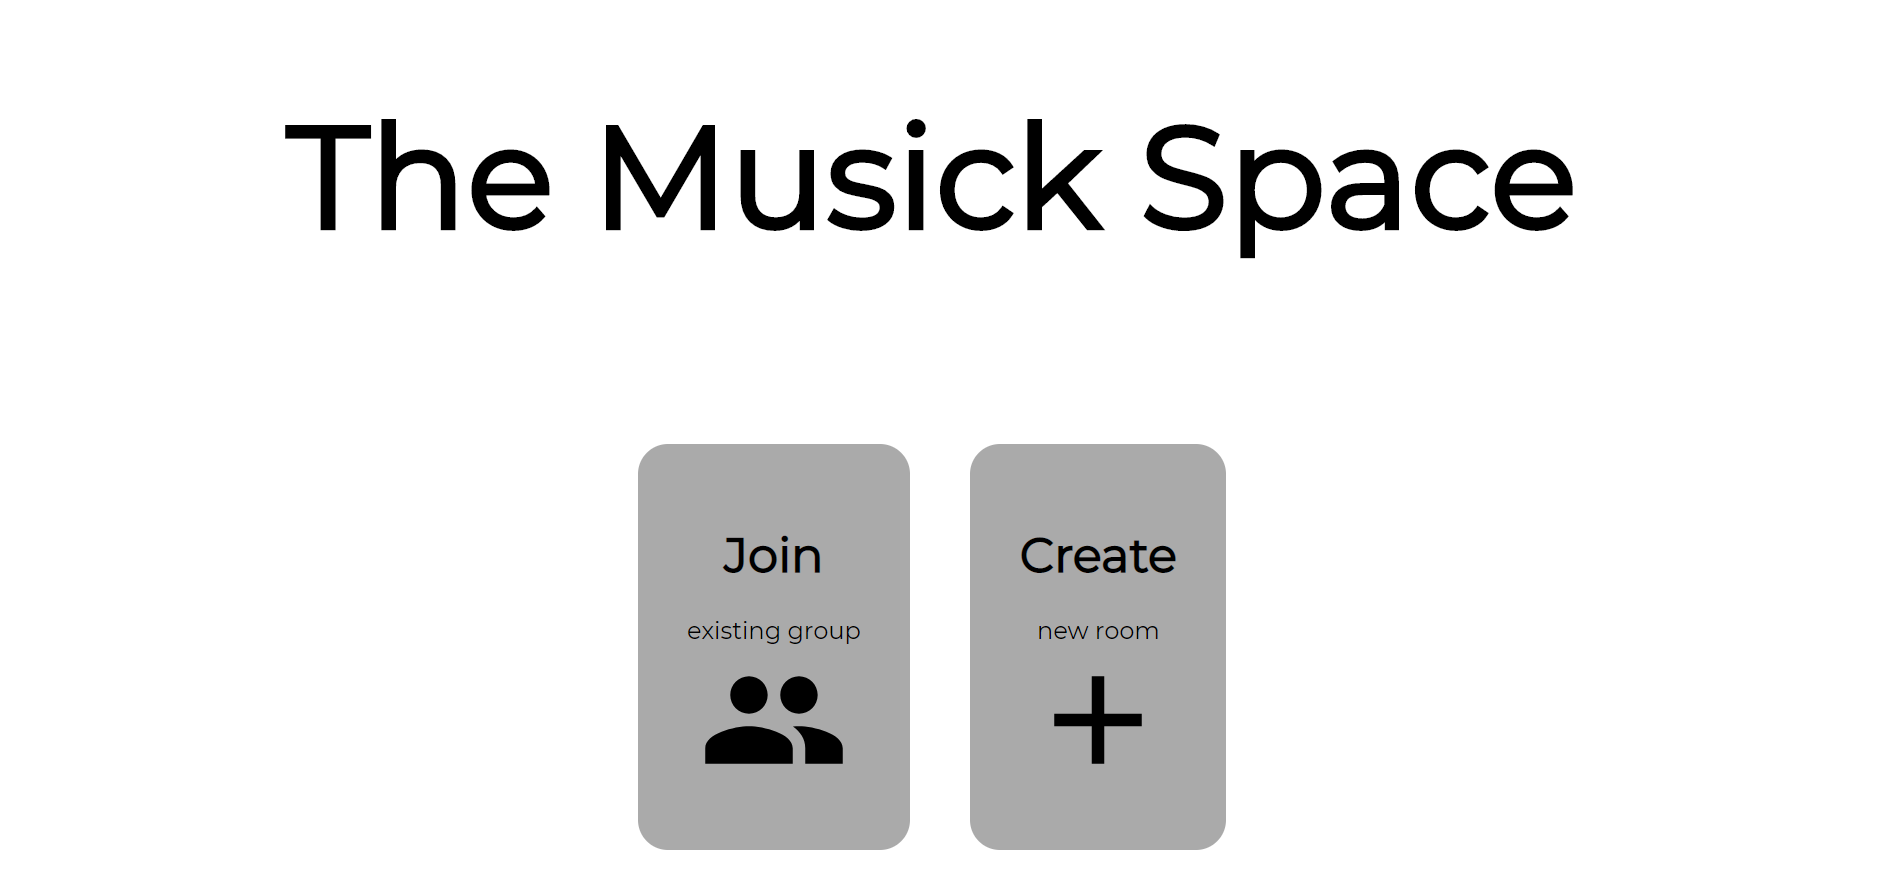 The Musick Space